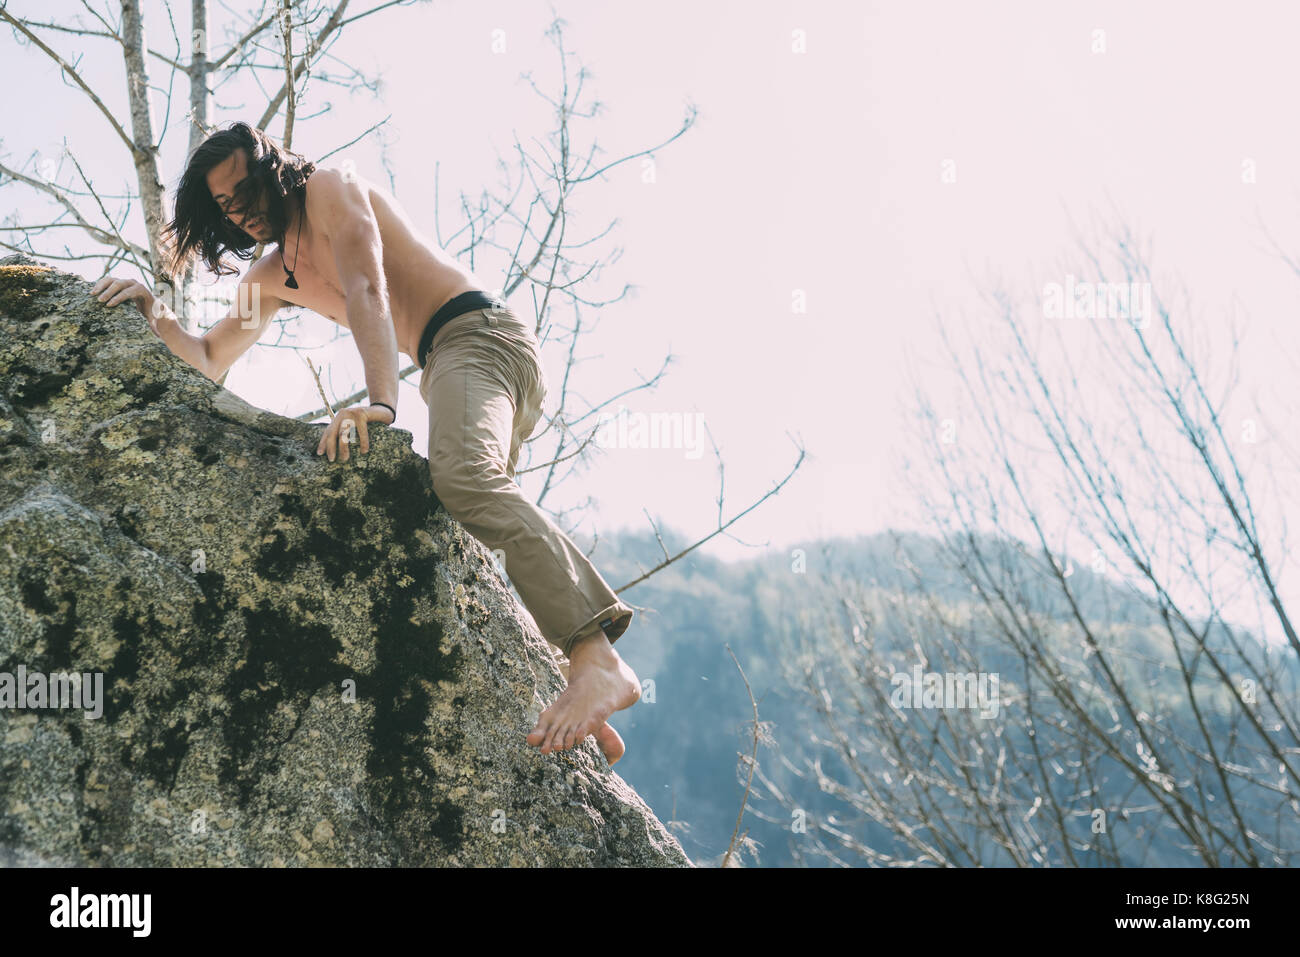 Bare chested and bare foot male boulderer climbing boulder, Lombardy, Italy - Stock Image